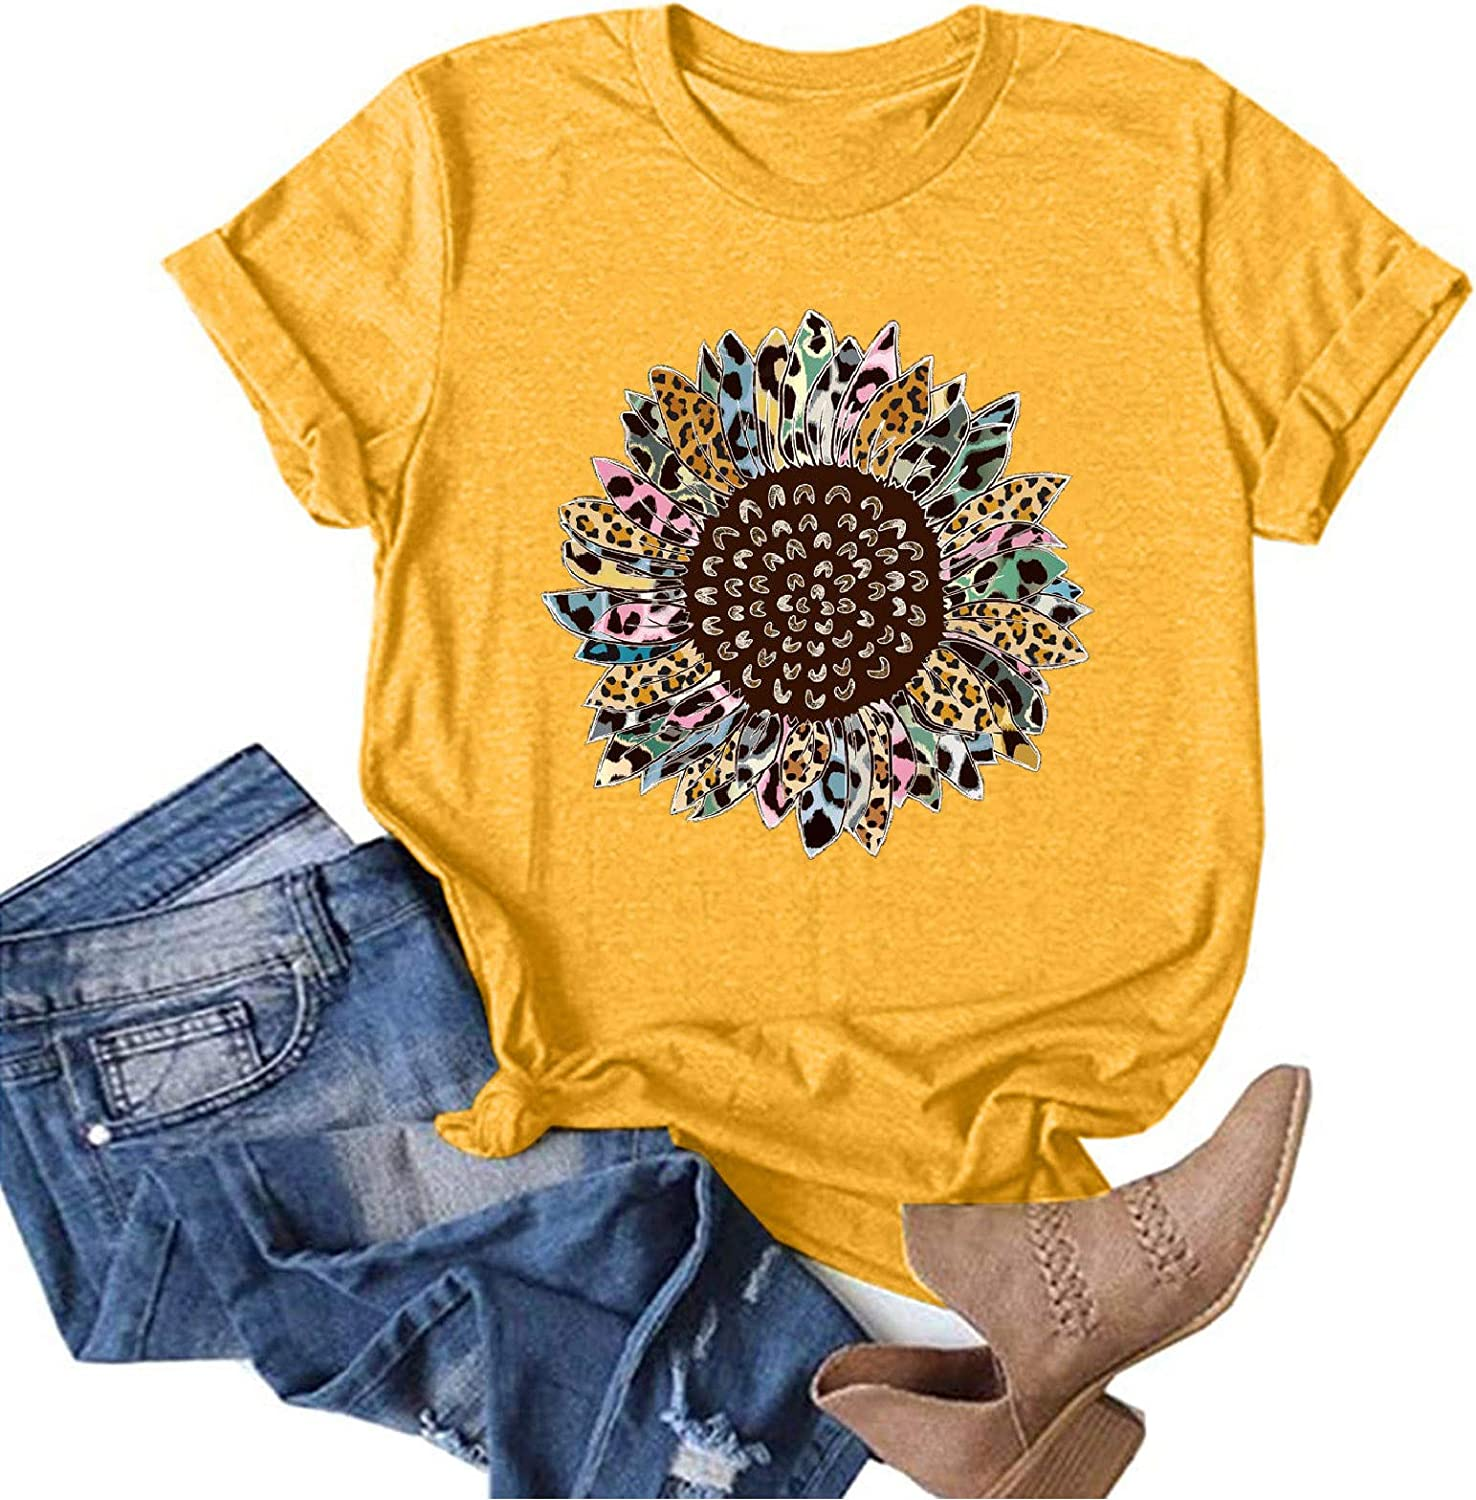 Deluxe Aukbays Womens Short Sleeve Tops Cute Ca Letters specialty shop Printing